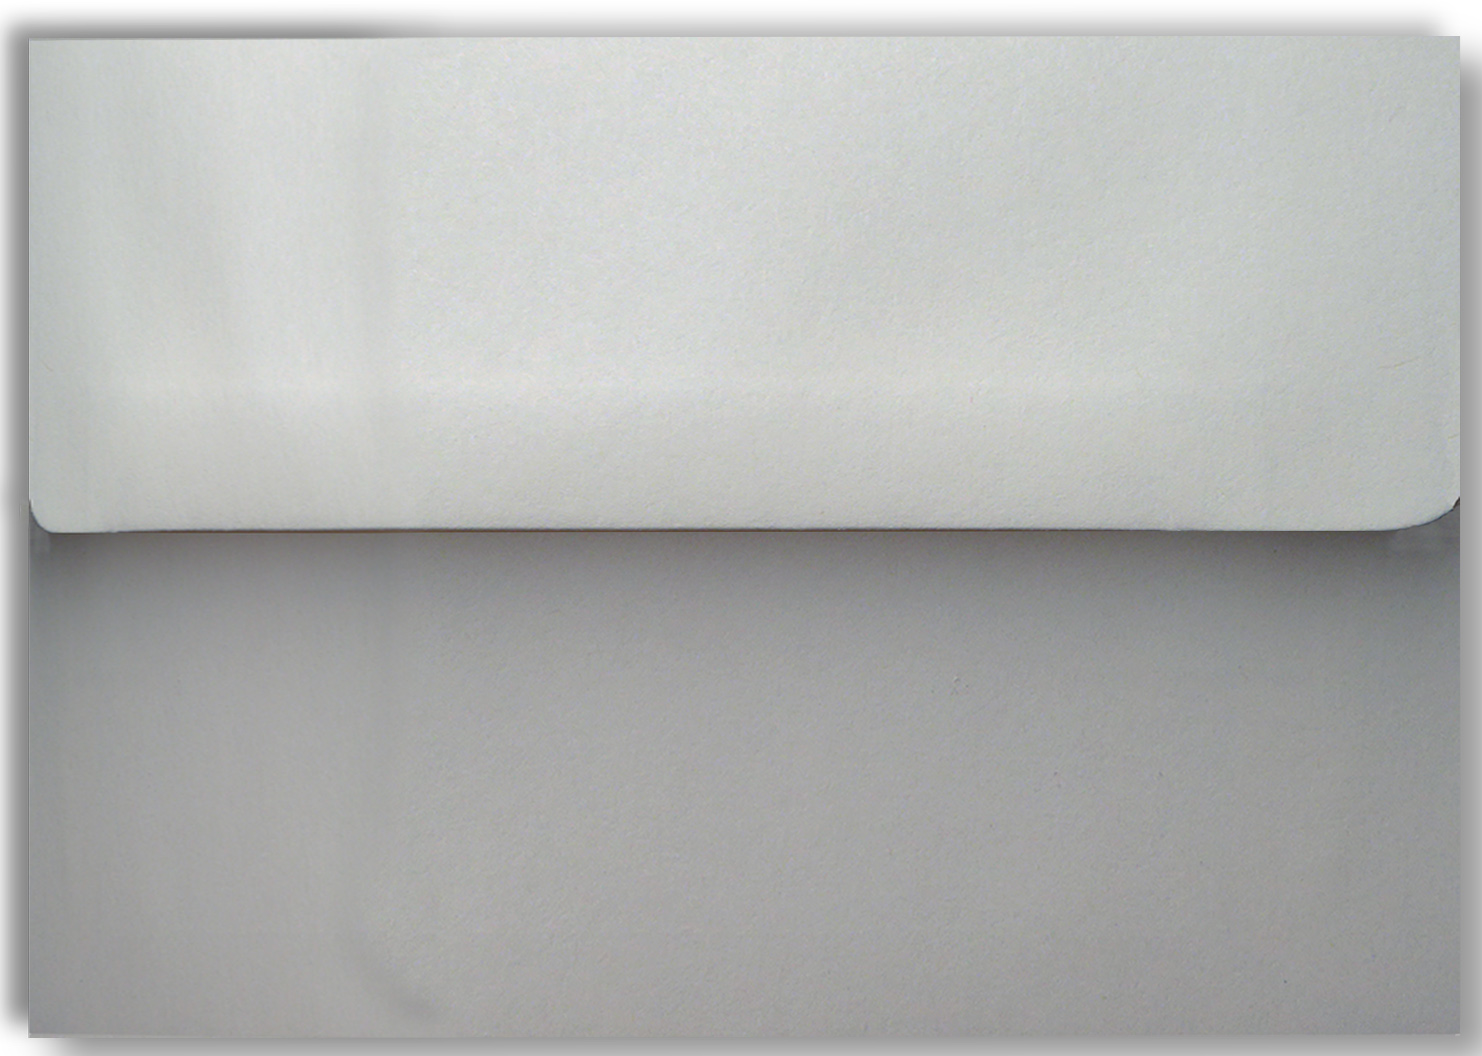 Announcements Showers Weddings from The Envelope Gallery Grey Envelopes 50 Boxed for 3 3//8 X 4 7//8 Response Cards Invitations Measures: 3 5//8 x 5 1//8 Gray Pastel A1